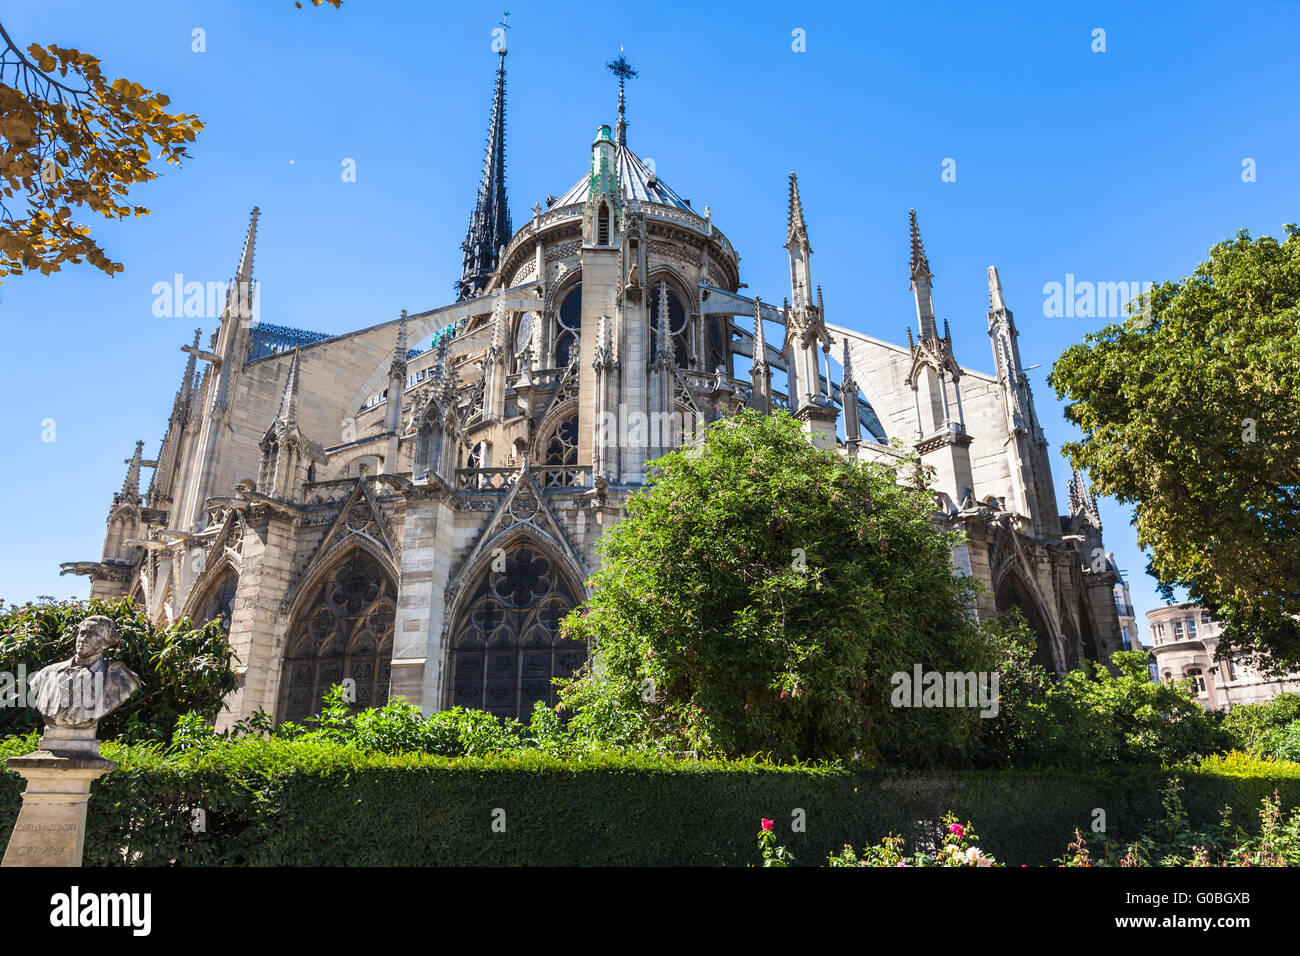 Back view of Notre Dame in Paris, France - Stock Image